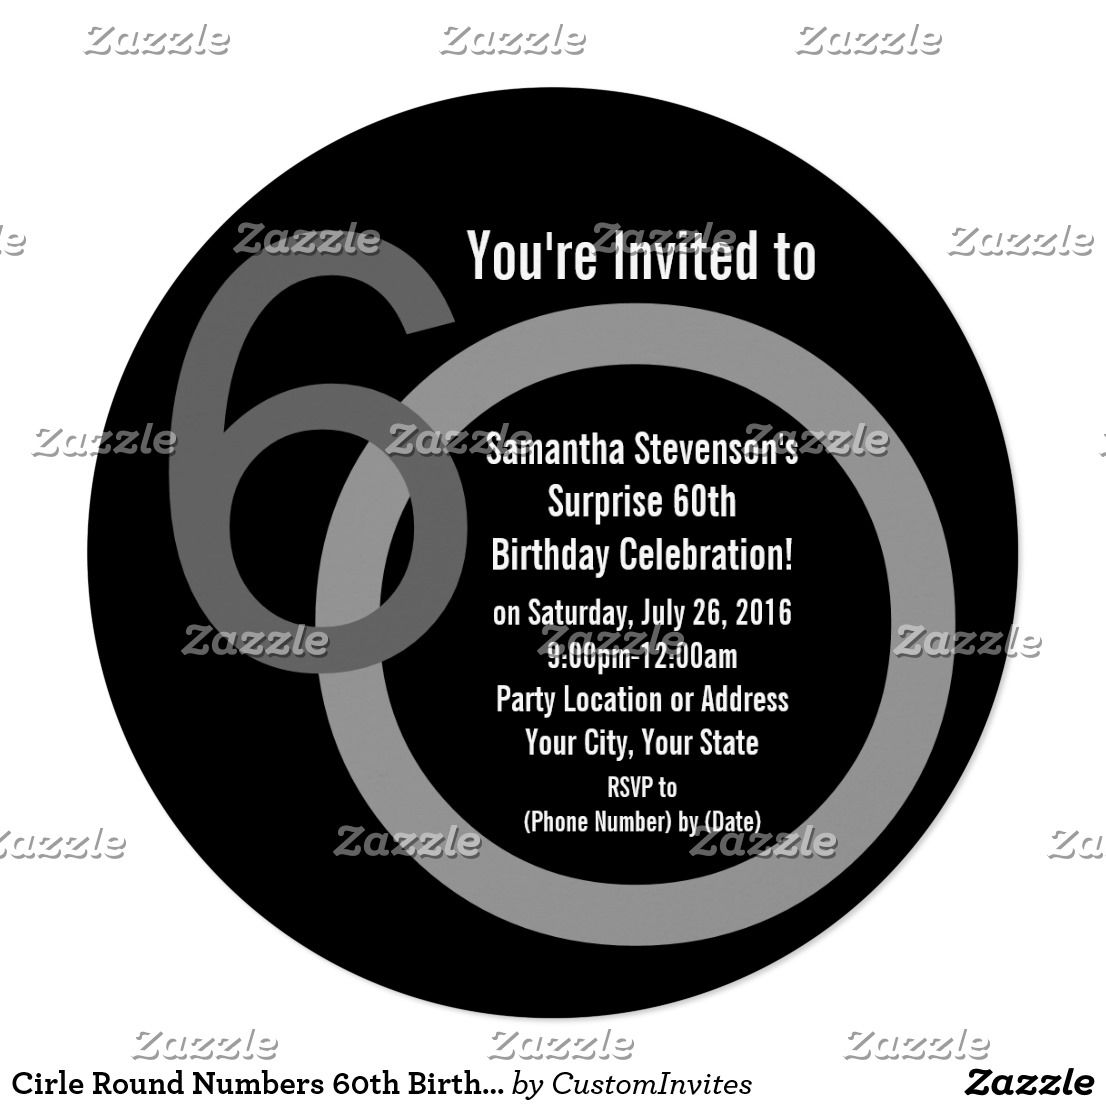 Cirle round numbers 60th birthday party invitation 60th birthday cirle round numbers 60th birthday party invitation round shape really sets this contemporary style apart cool modern black and gray 60th birthday stopboris Image collections